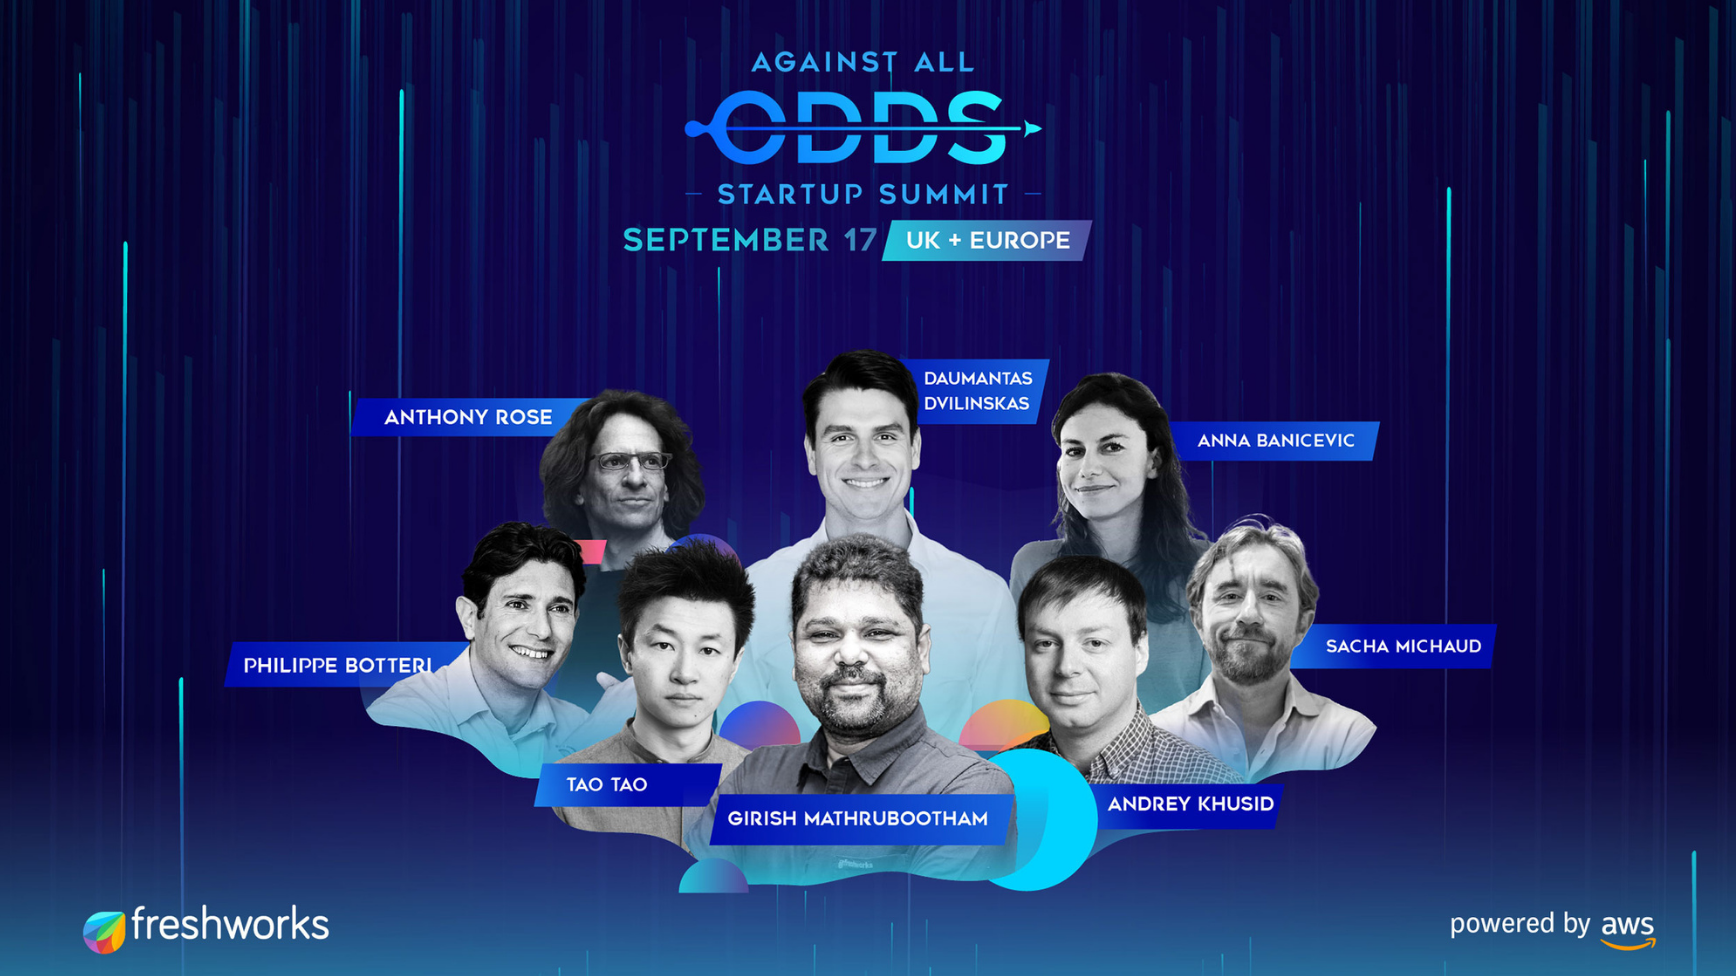 Against All Odds Startup Summit